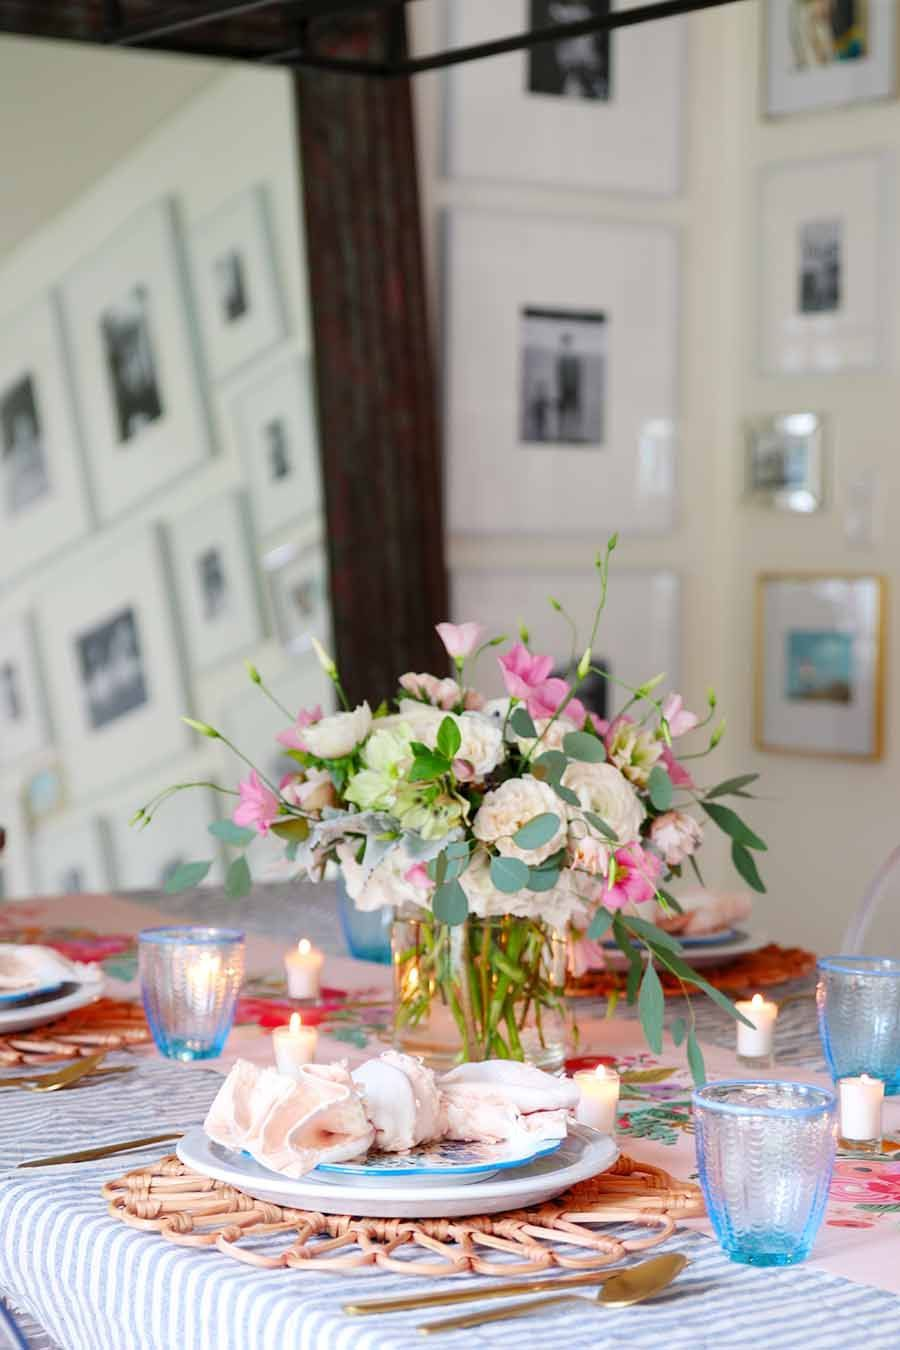 Decor Ideas Using Glass Jars Hallway Decor Ideas Uk Decor With Ideas Decor Ideas For 70th Birthday In 2020 Spring Table Settings Spring Table Easter Table Settings